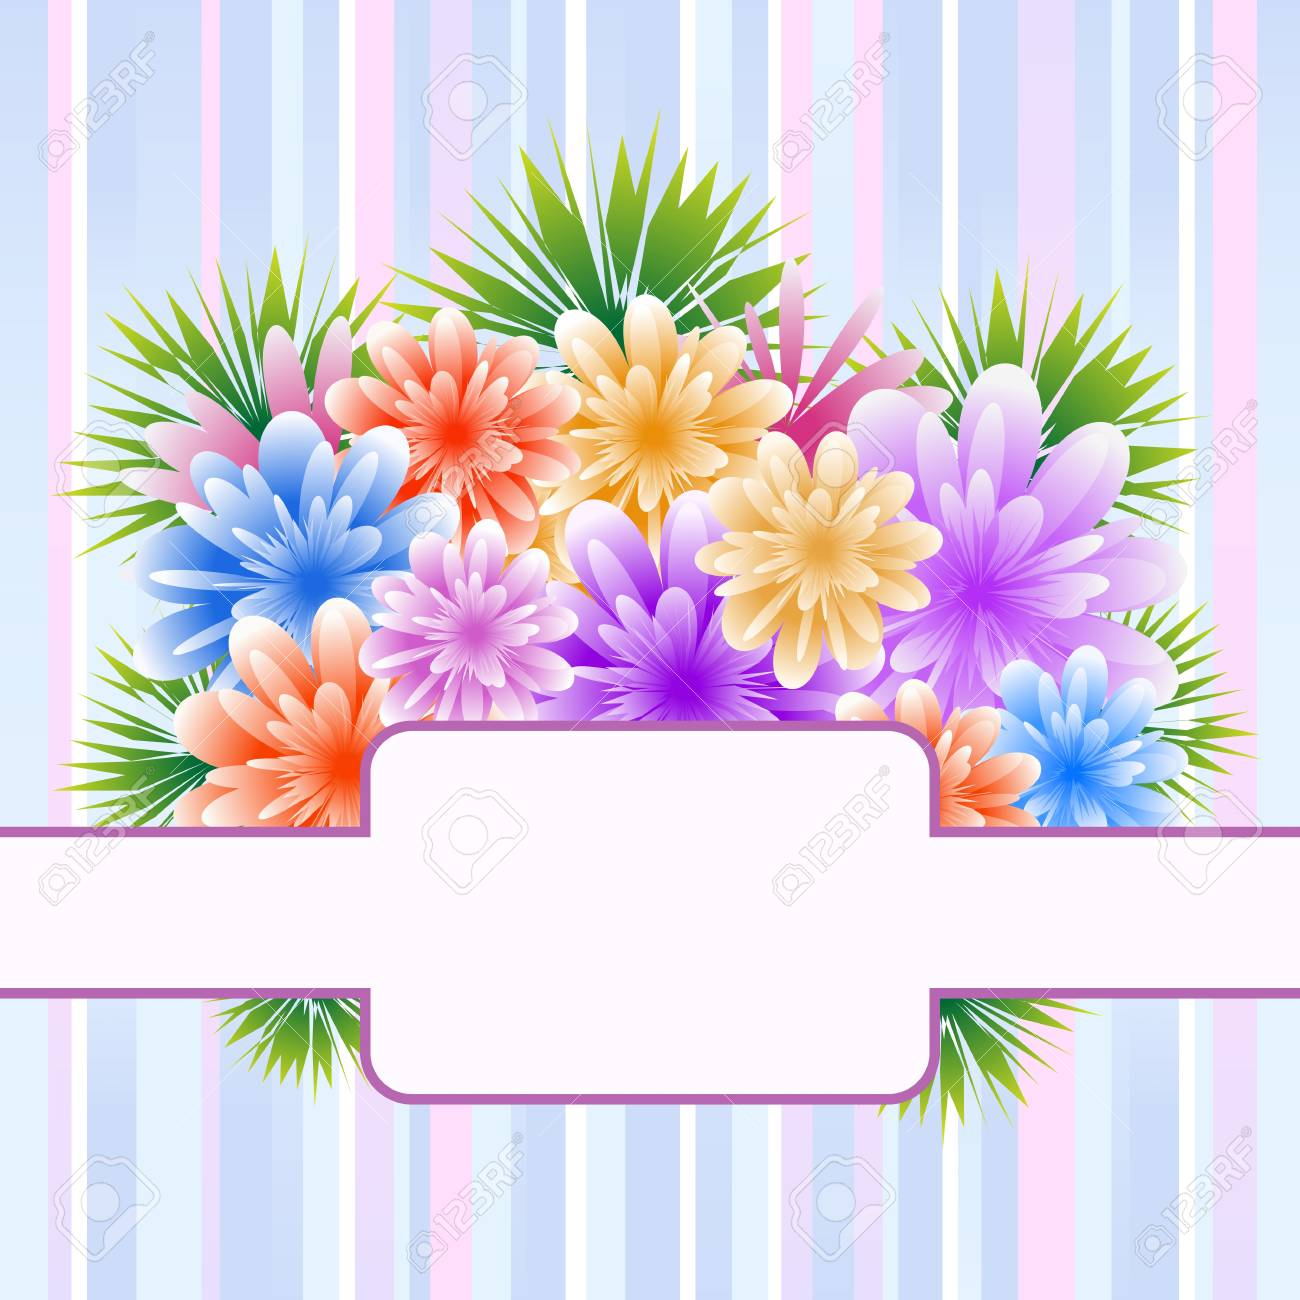 Flowers for mothers day, anniversary or birthday celebration set on a striped background. Copy space for text. Stock Vector - 16367364